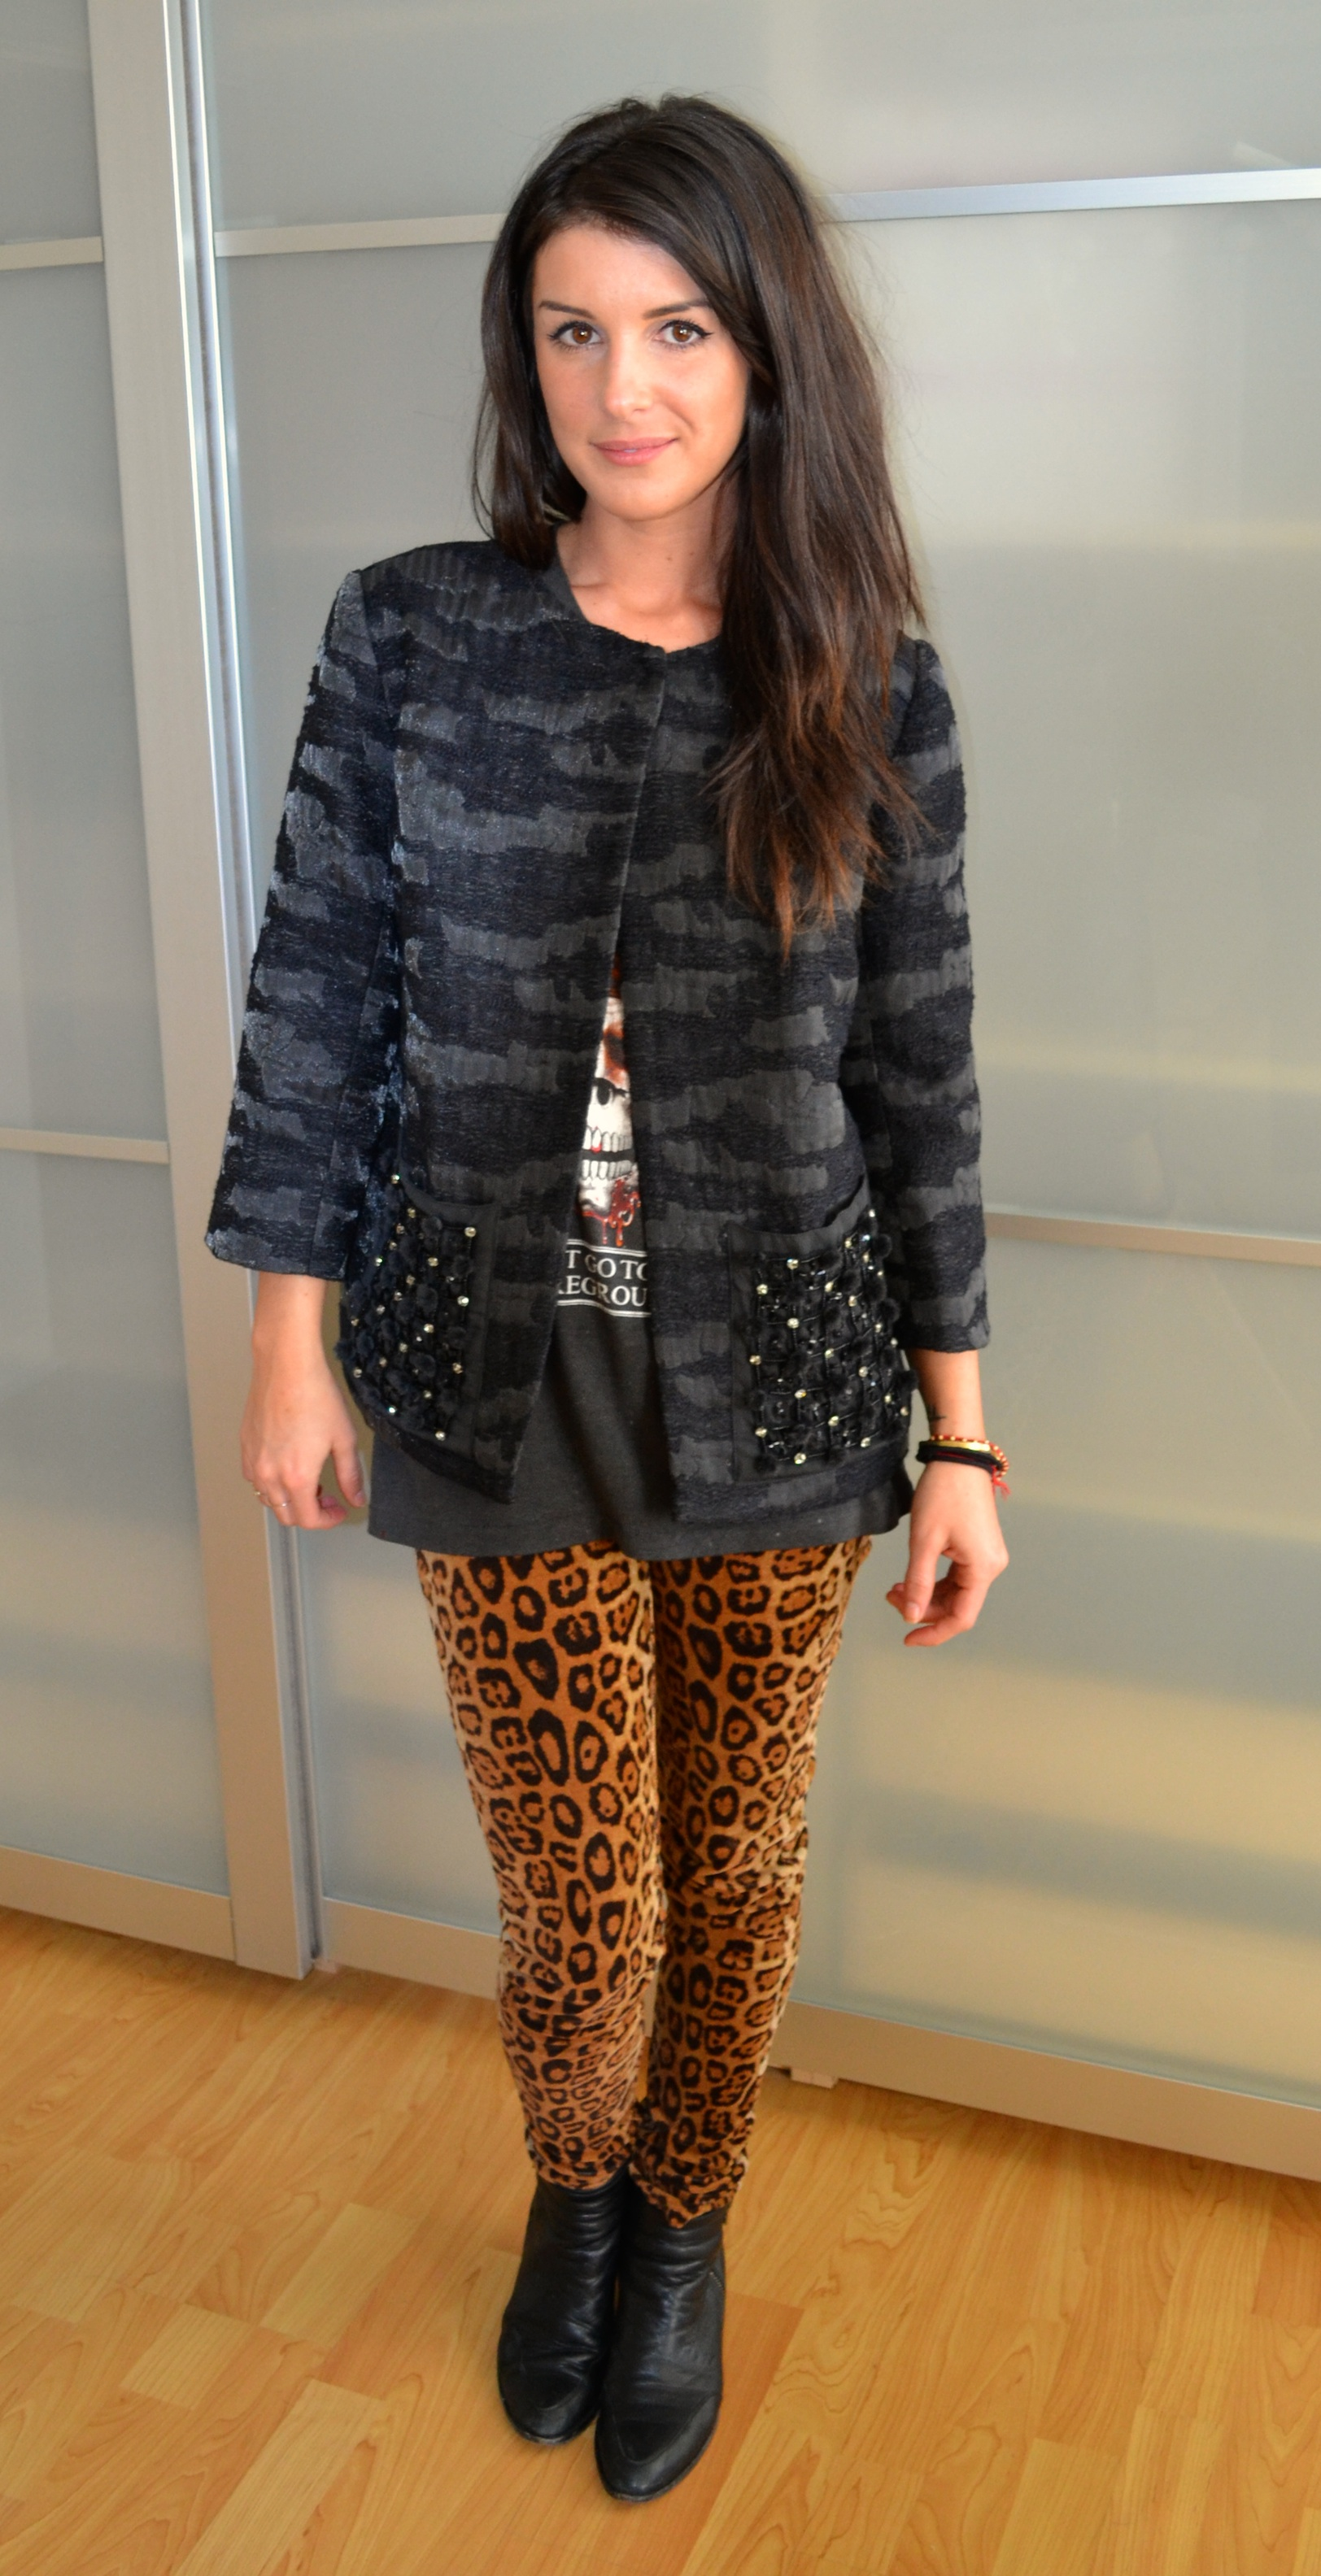 Shenae Grimes in LOGO by Lori Goldstein Jacket for QVC